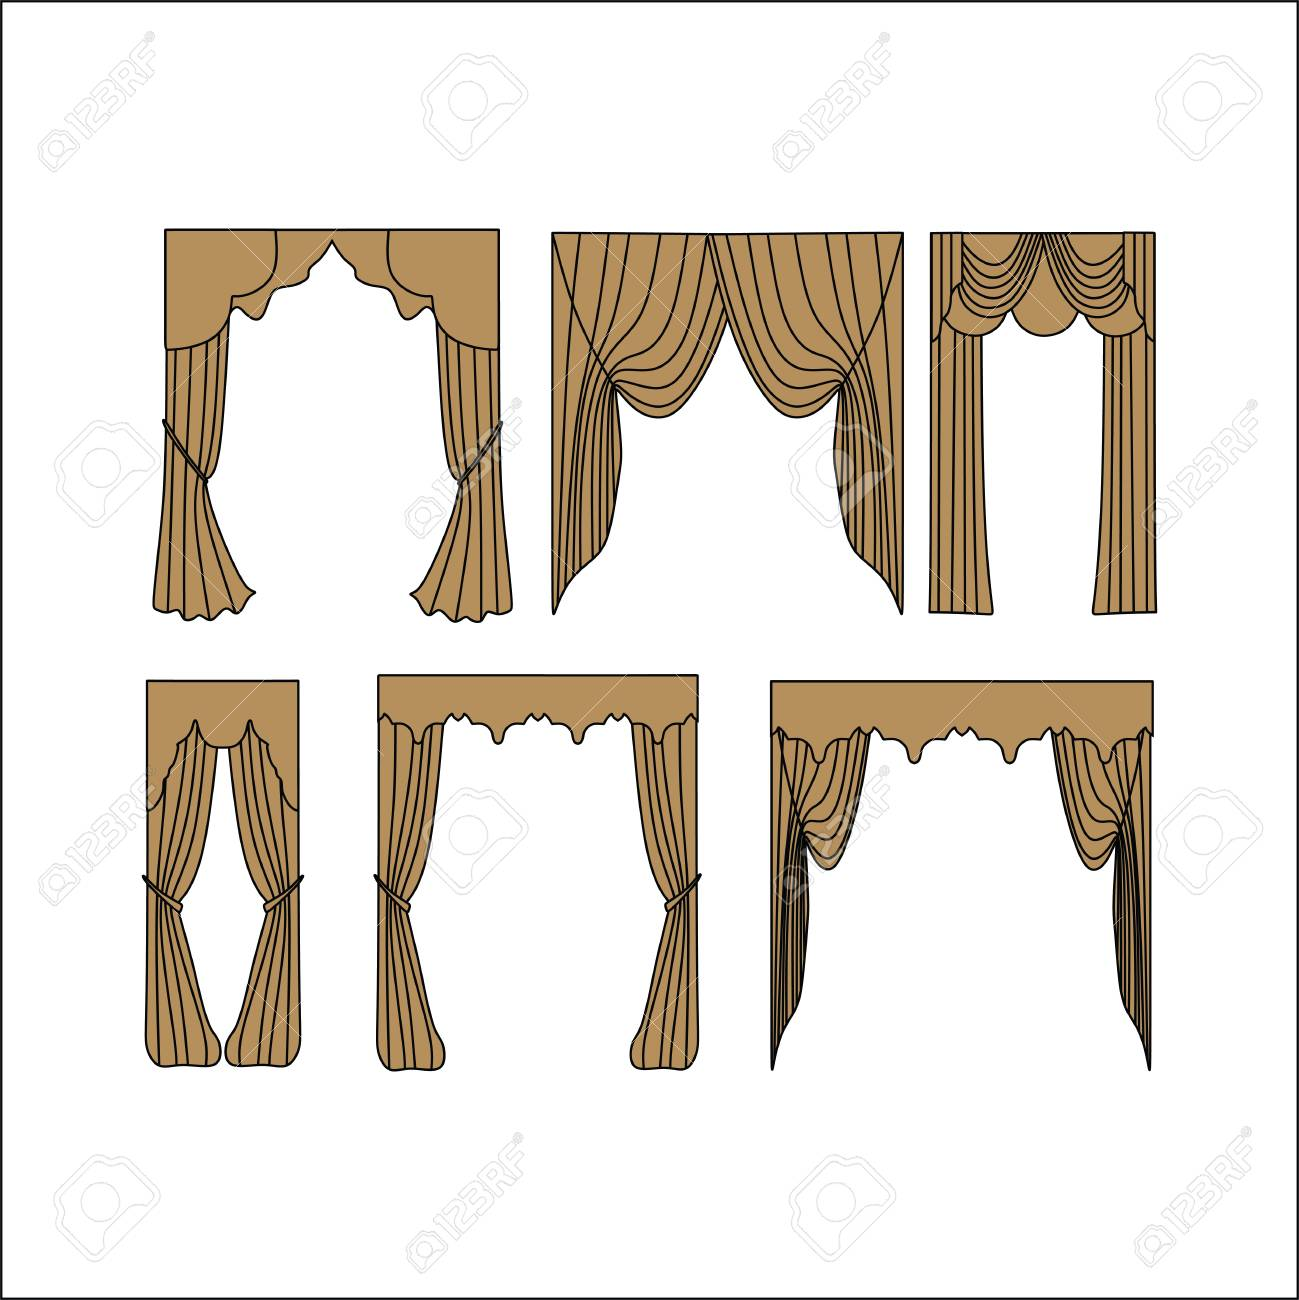 Window Curtains Design Sketch Royalty Free Cliparts Vectors And Stock Illustration Image 65423133